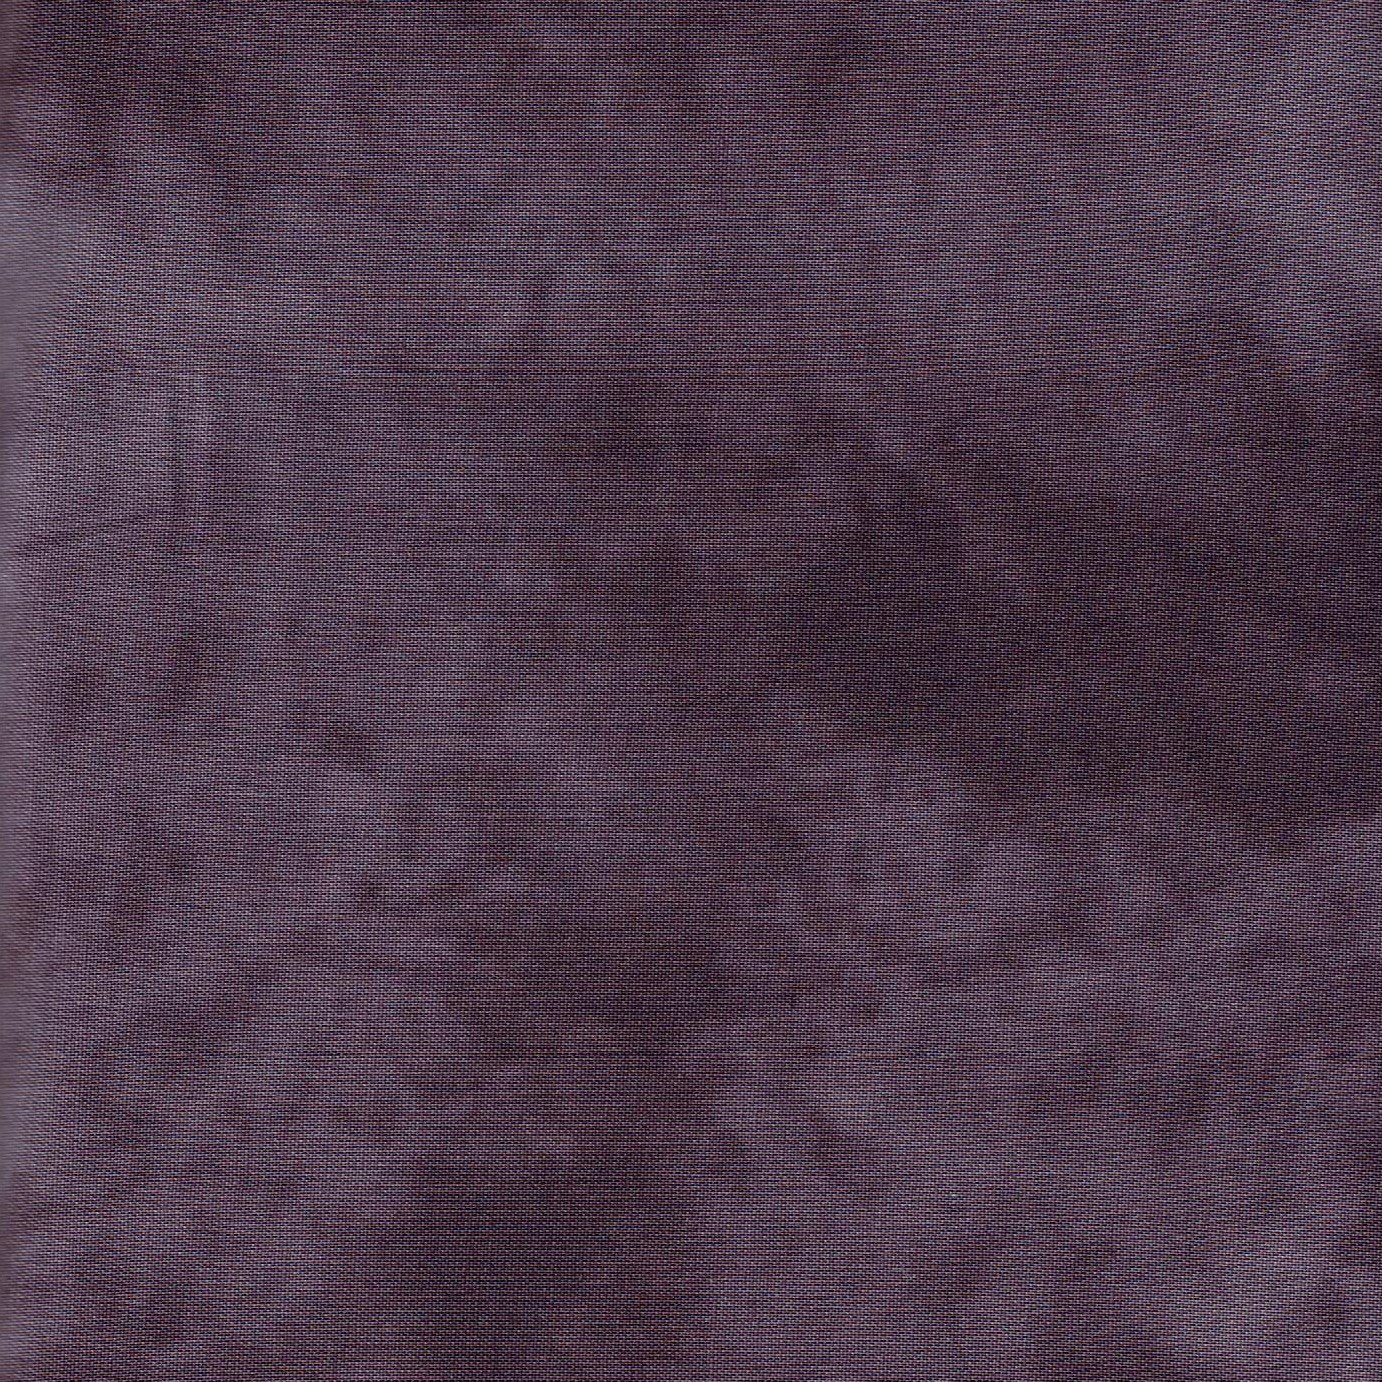 *2* Quilter's Shadow 4516-509  117